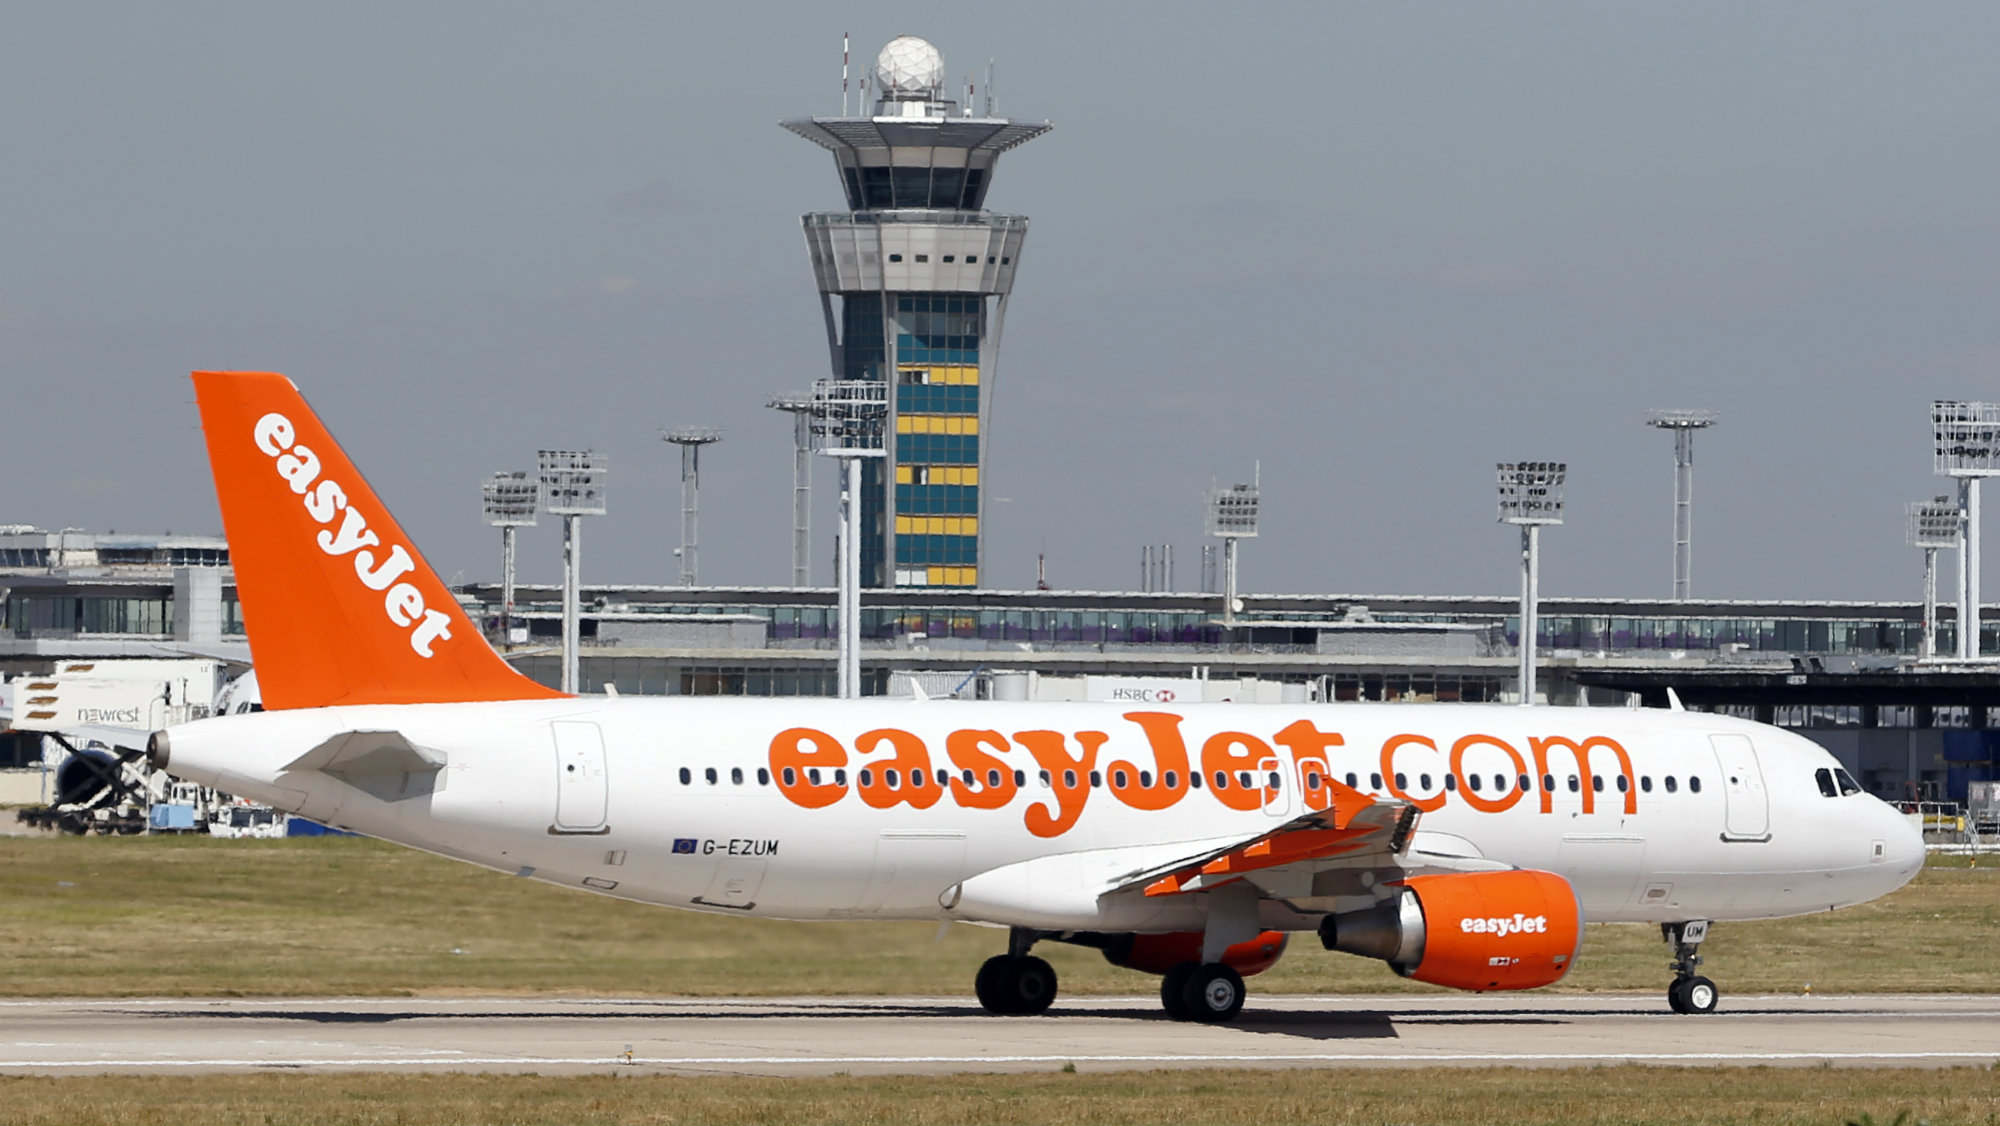 An Airbus A320 EasyJet passenger plane passes by the air traffic control tower as it prepares for take off at Orly Airport, near Paris.